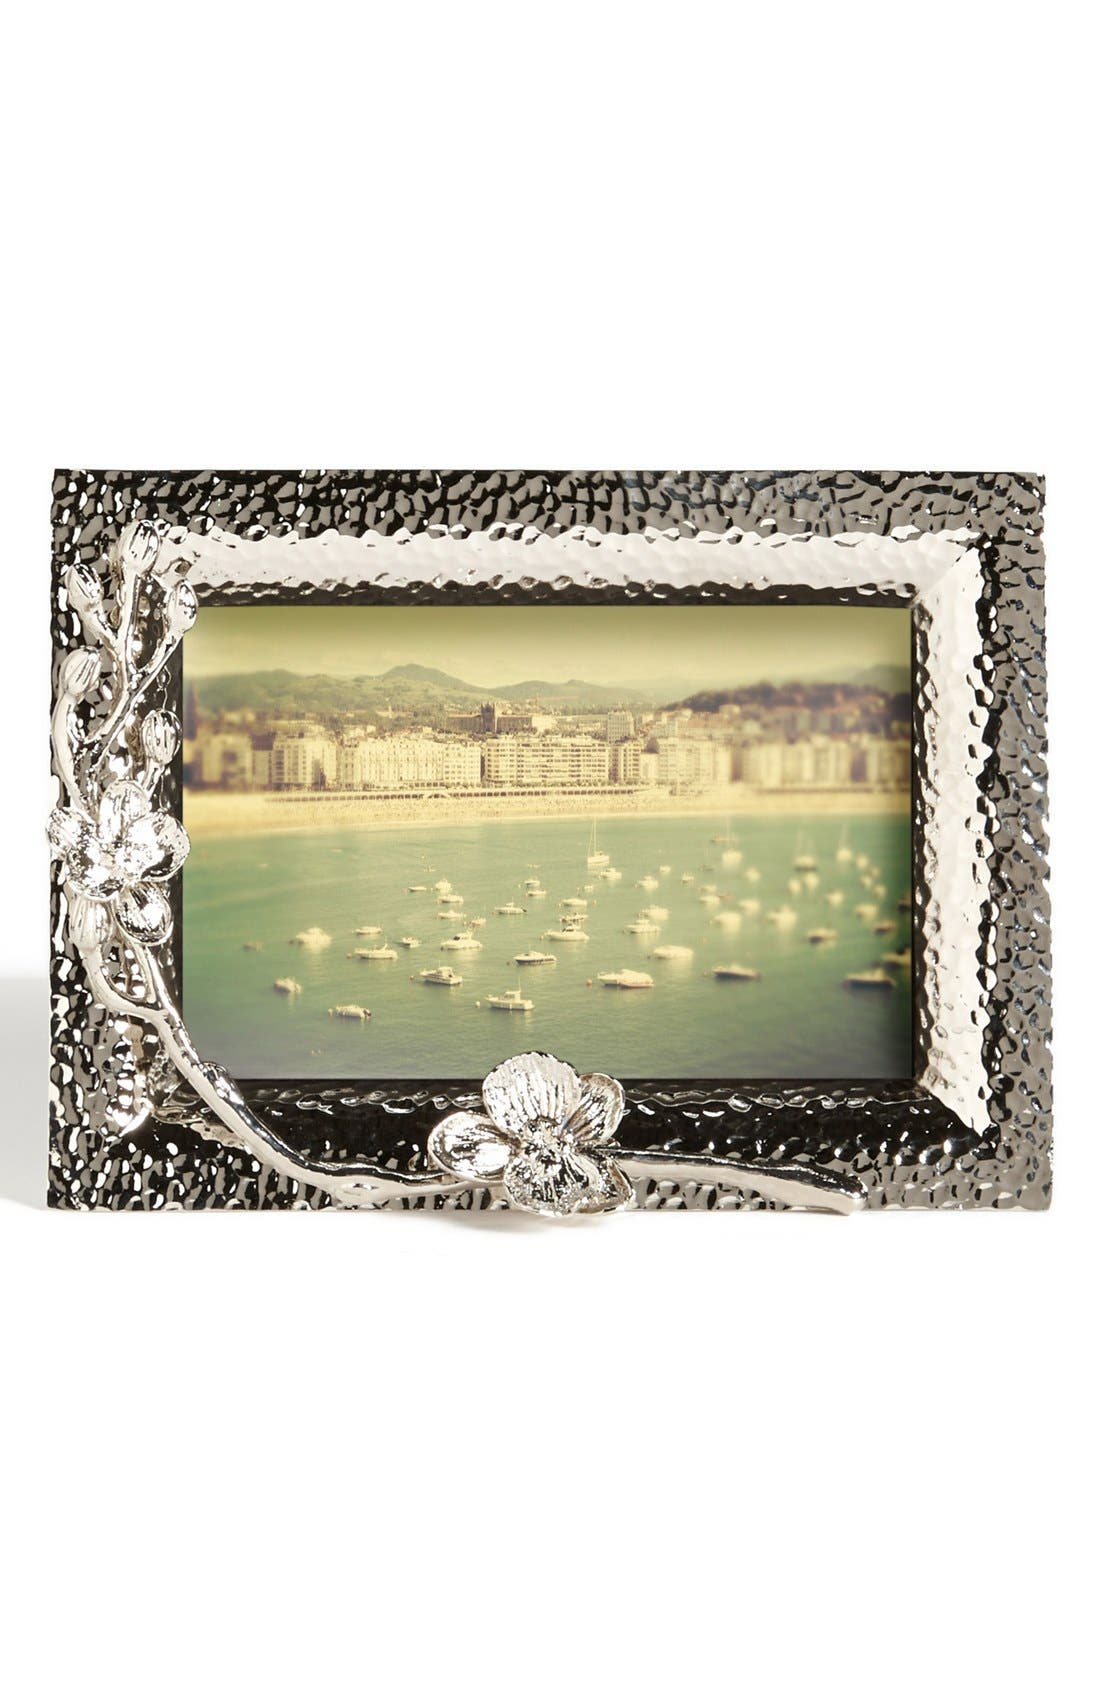 Main Image - Michael Aram 'White Orchid' Picture Frame (4x6)